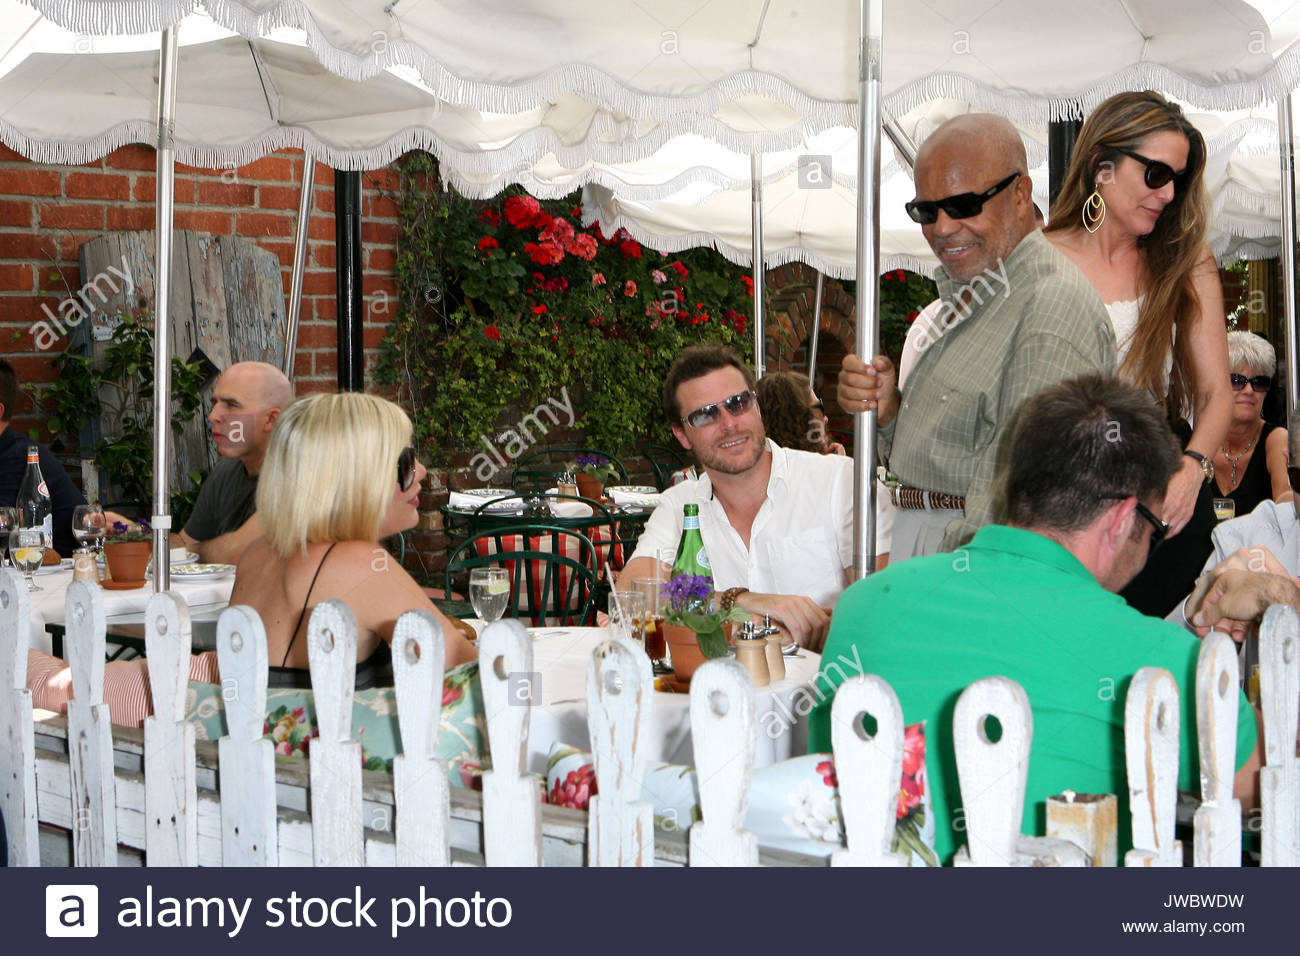 Tamla motown founderberry gordy had lunch at the ivy on friday tamla motown founderberry gordy had lunch at the ivy on friday with a couple of friends before leaving he went over to greet tori spelling and her m4hsunfo